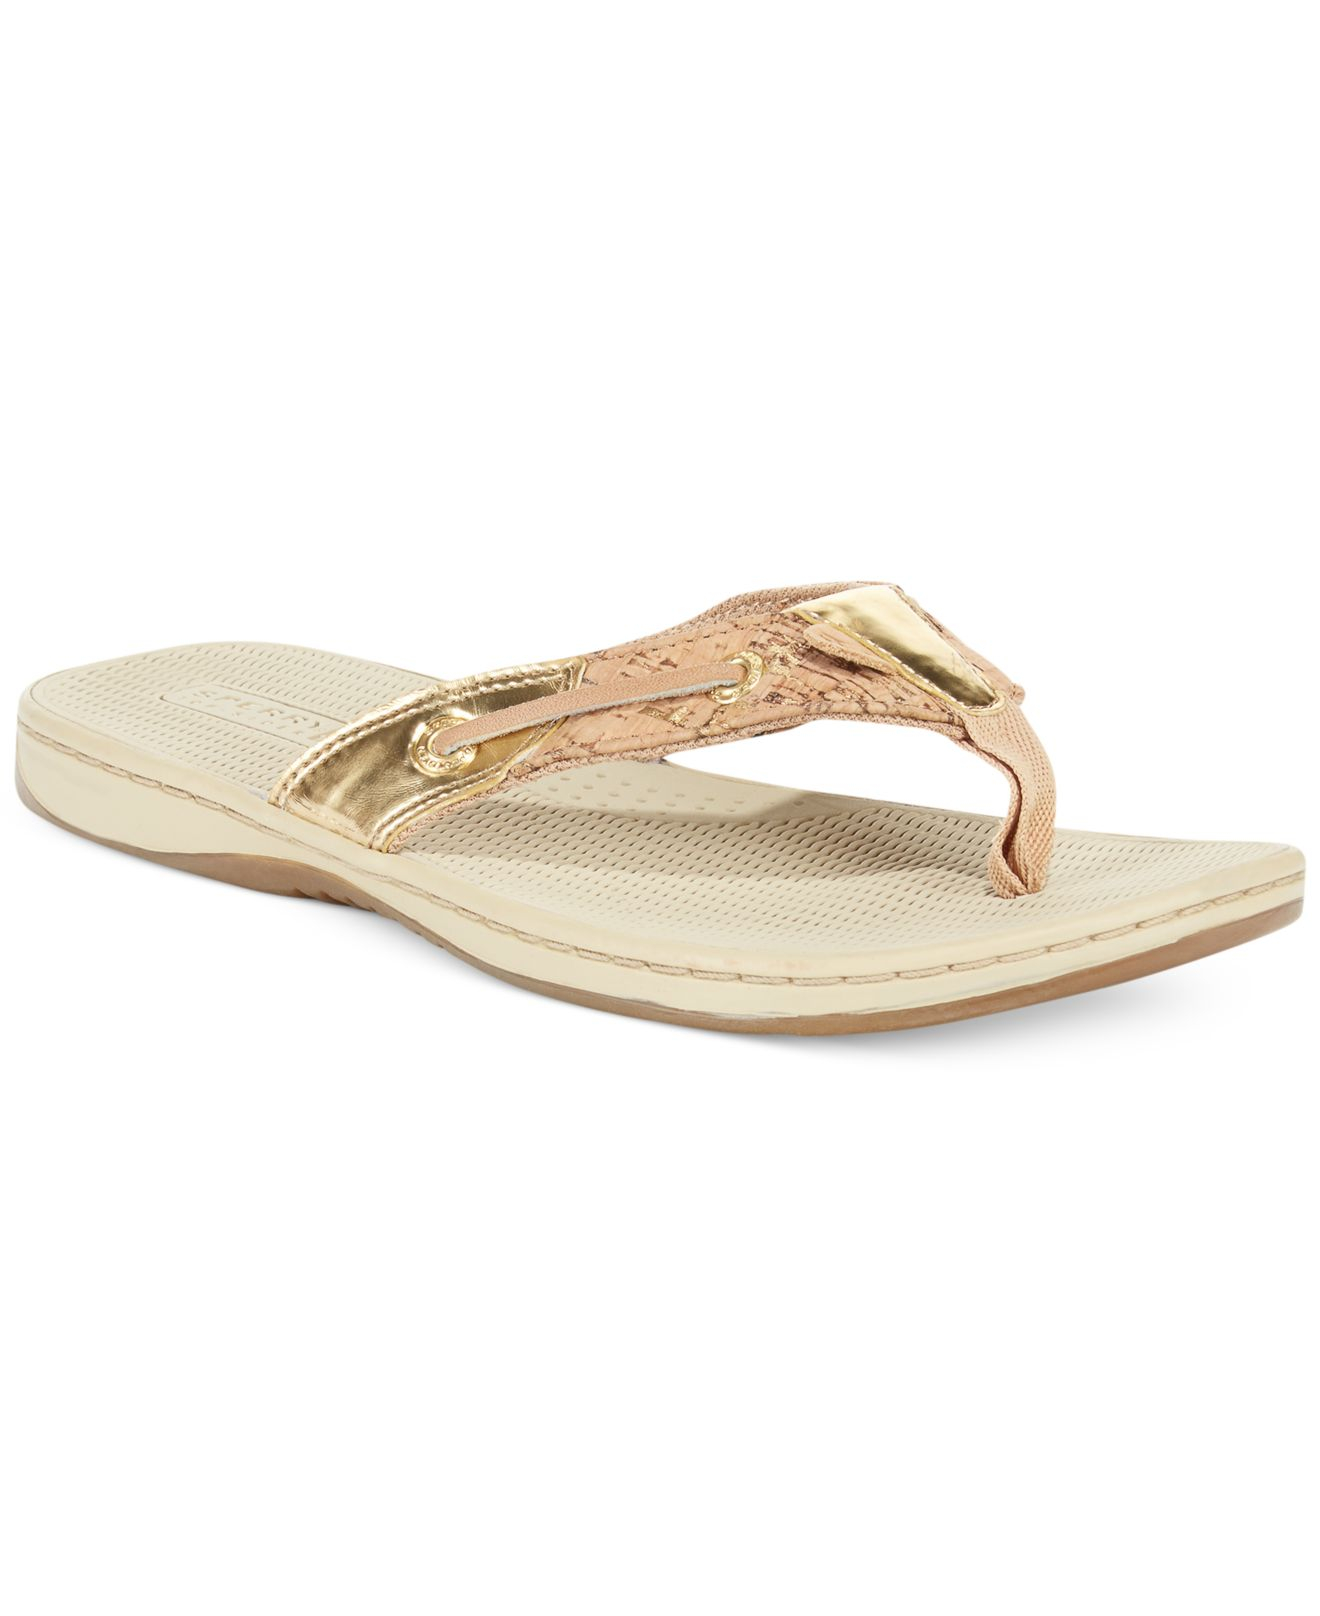 5b620f0551f2 Lyst - Sperry Top-Sider Sperry Women S Seafish Cork Thong Sandals in ...